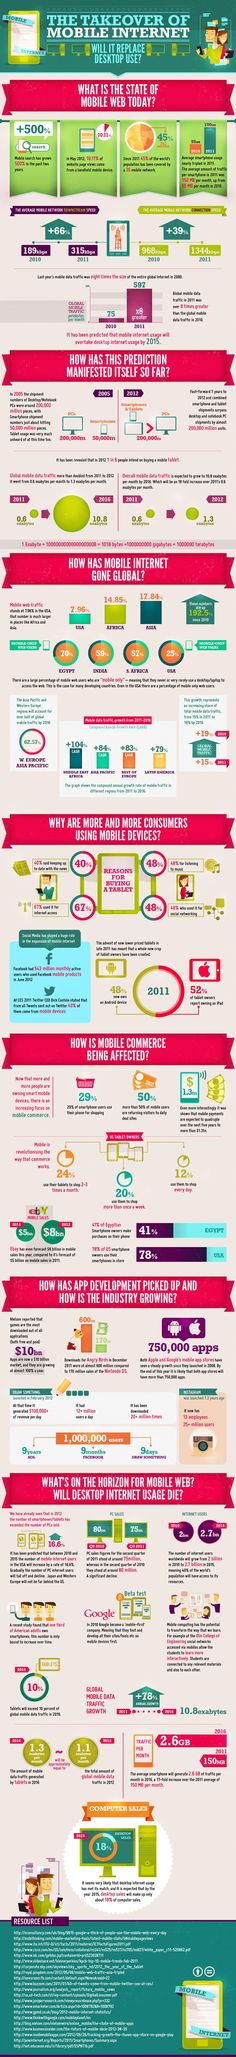 The Takeover of Mobile Internet